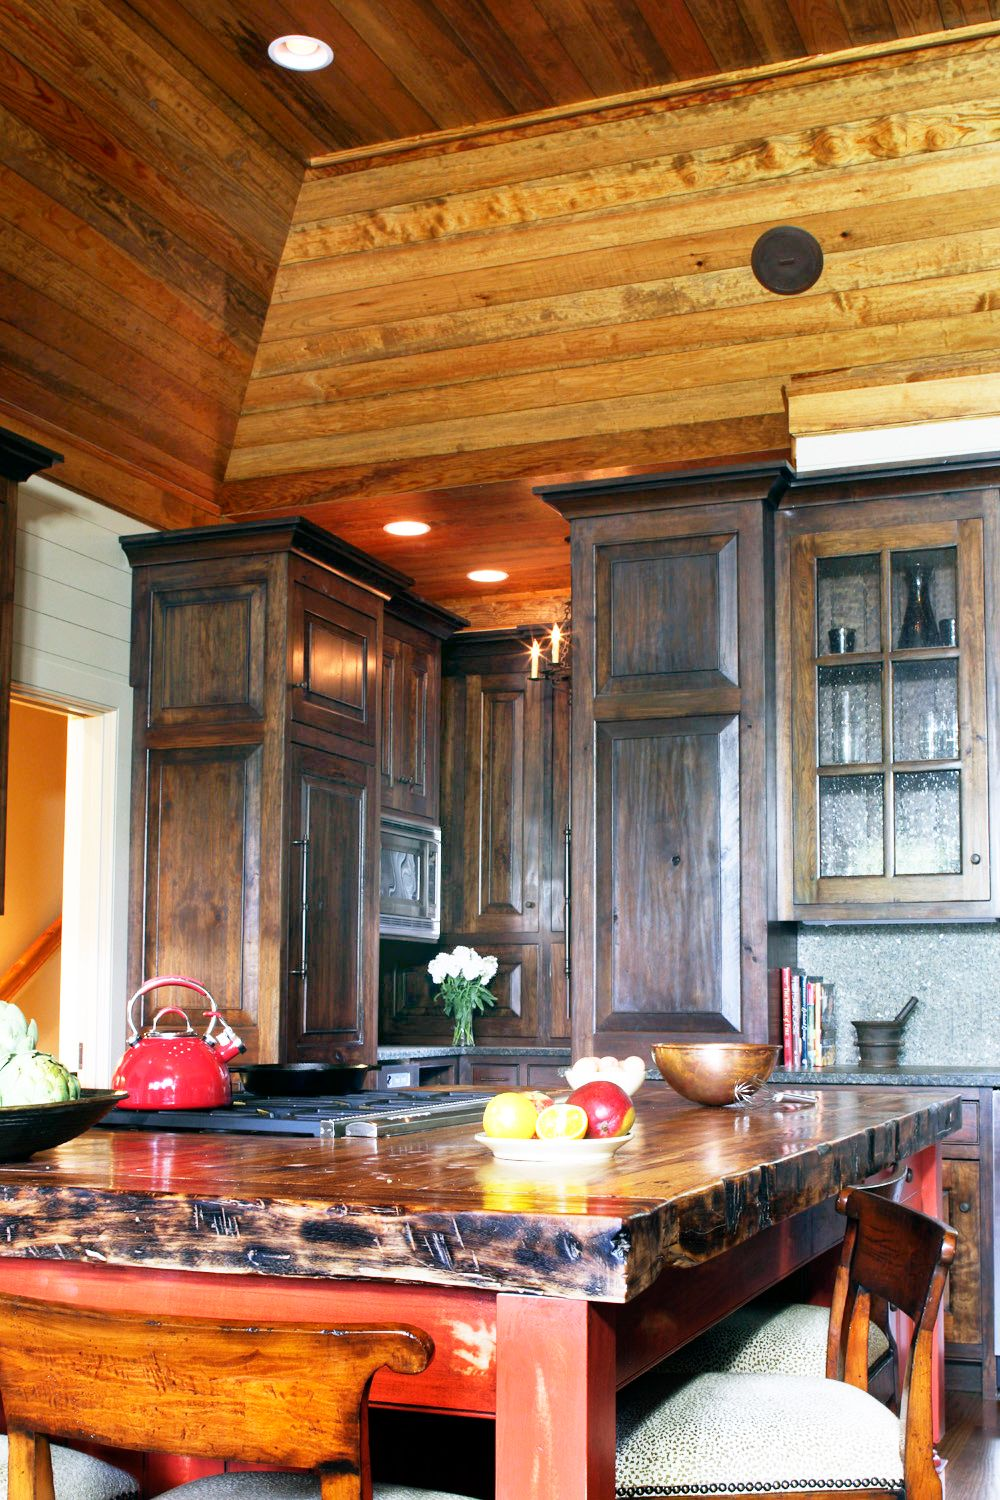 6 Kitchen walls ceilings and island 25.jpg